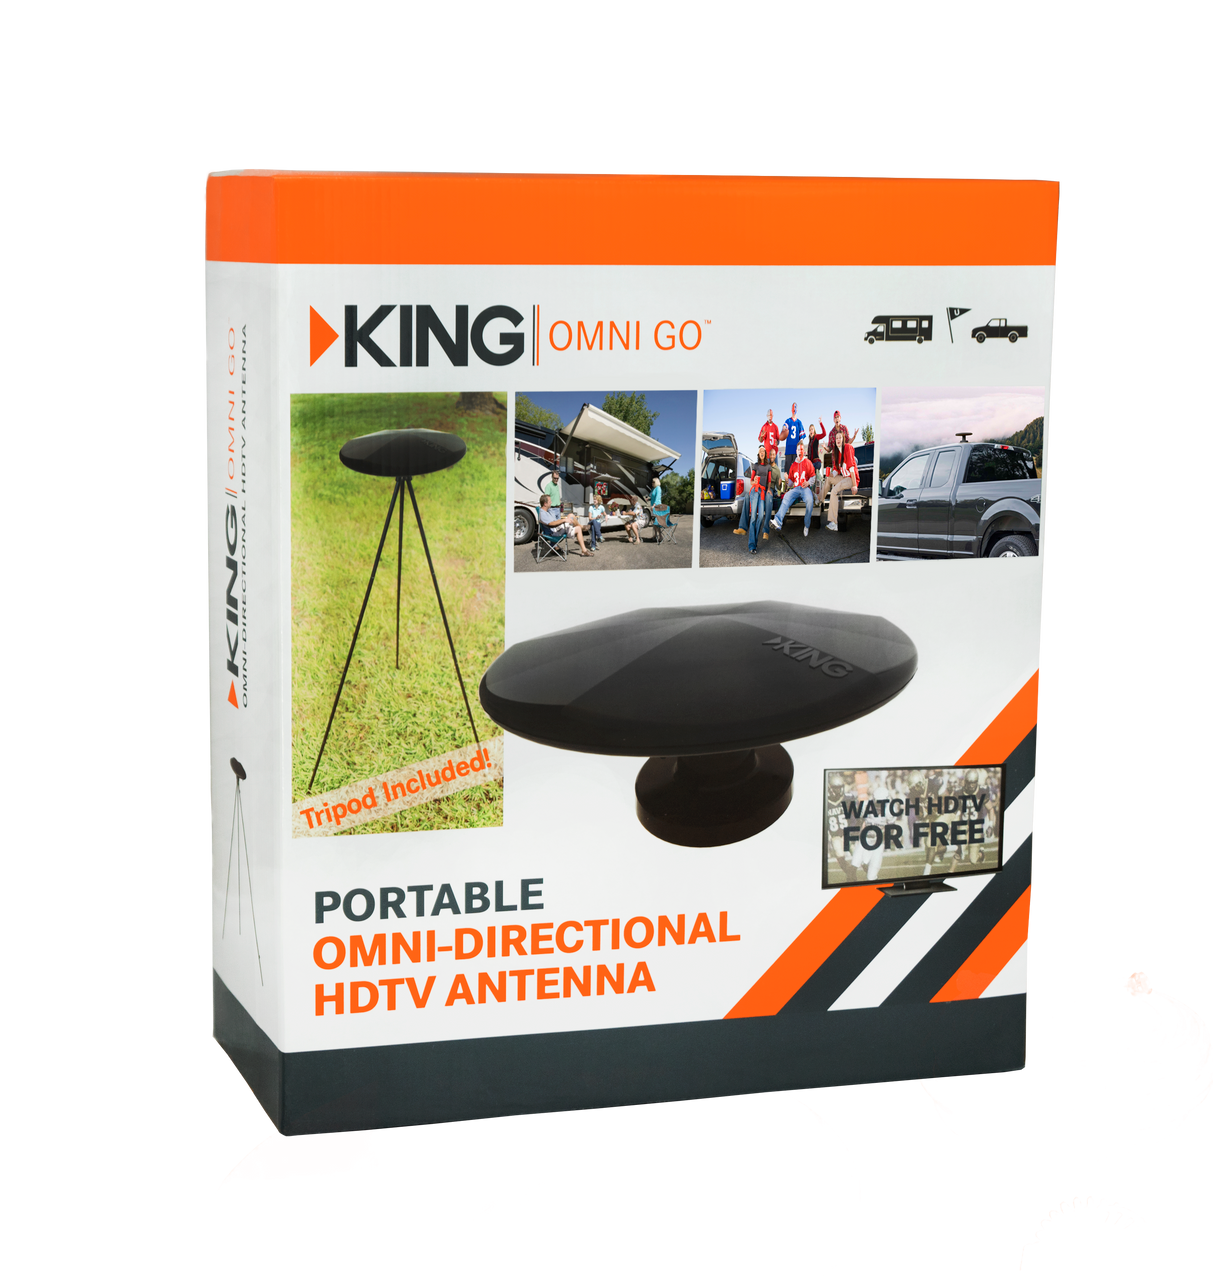 KING OmniGo™ Portable OmniDirectional OTA HDTV Antenna